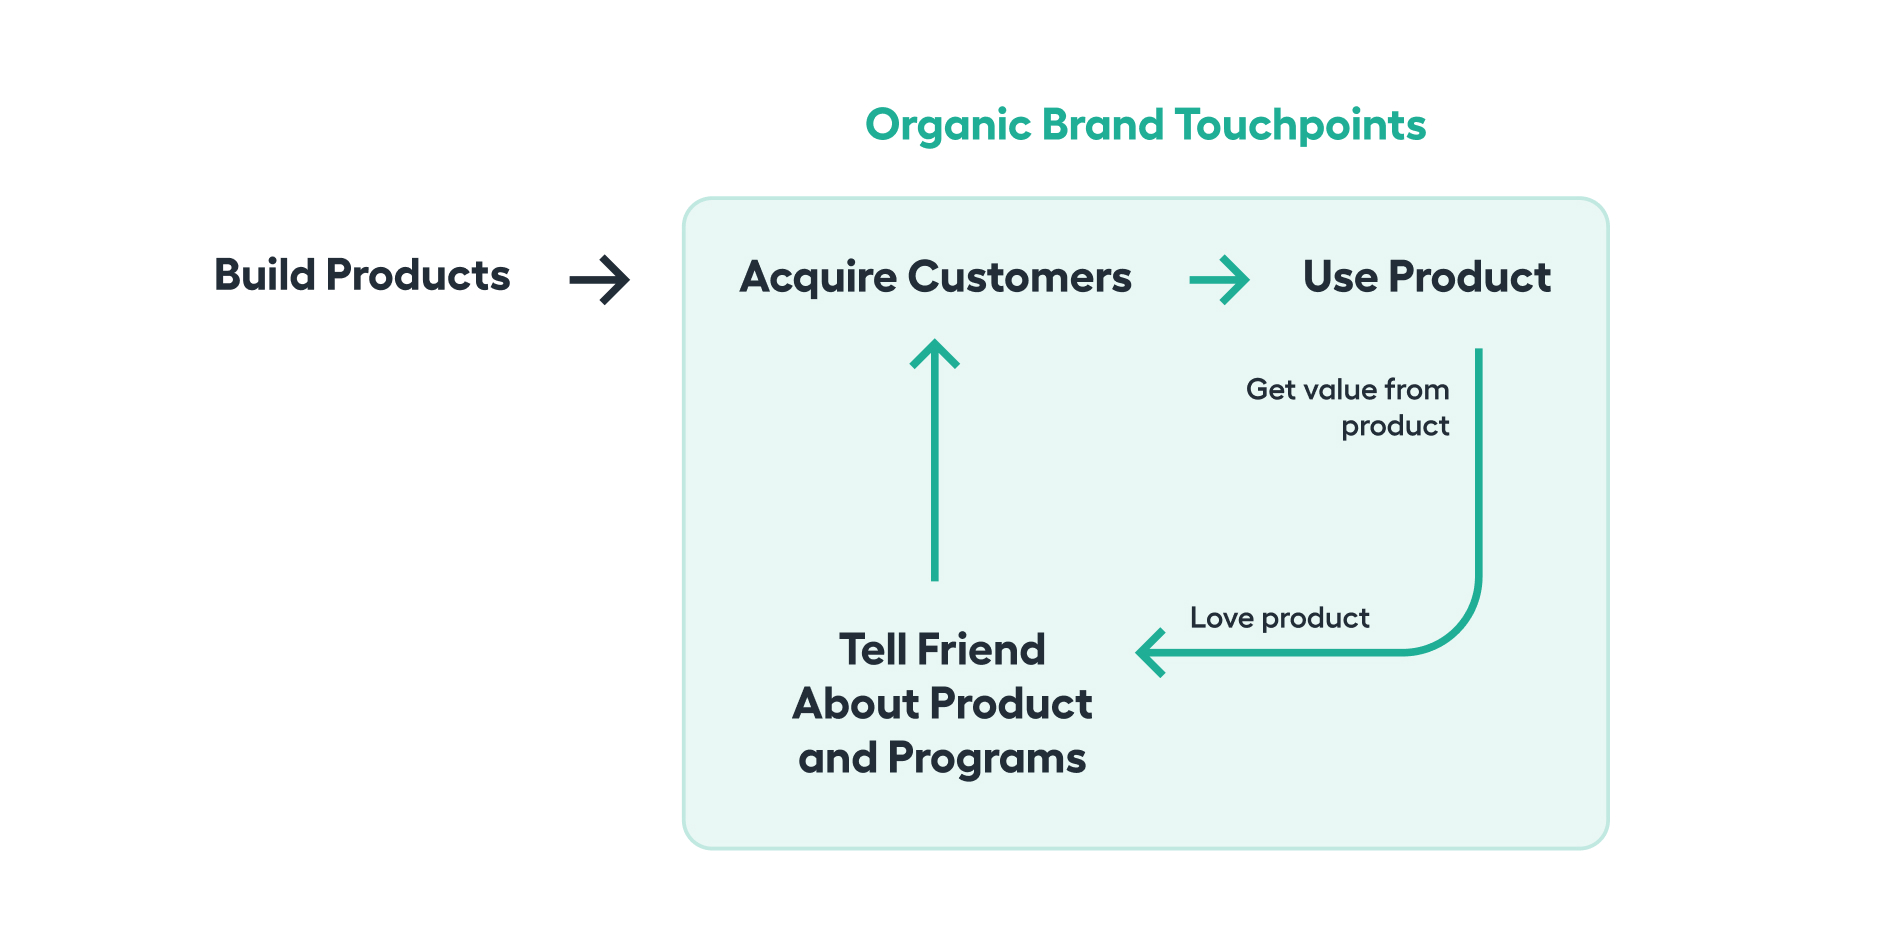 Organic Brand Touchpoints